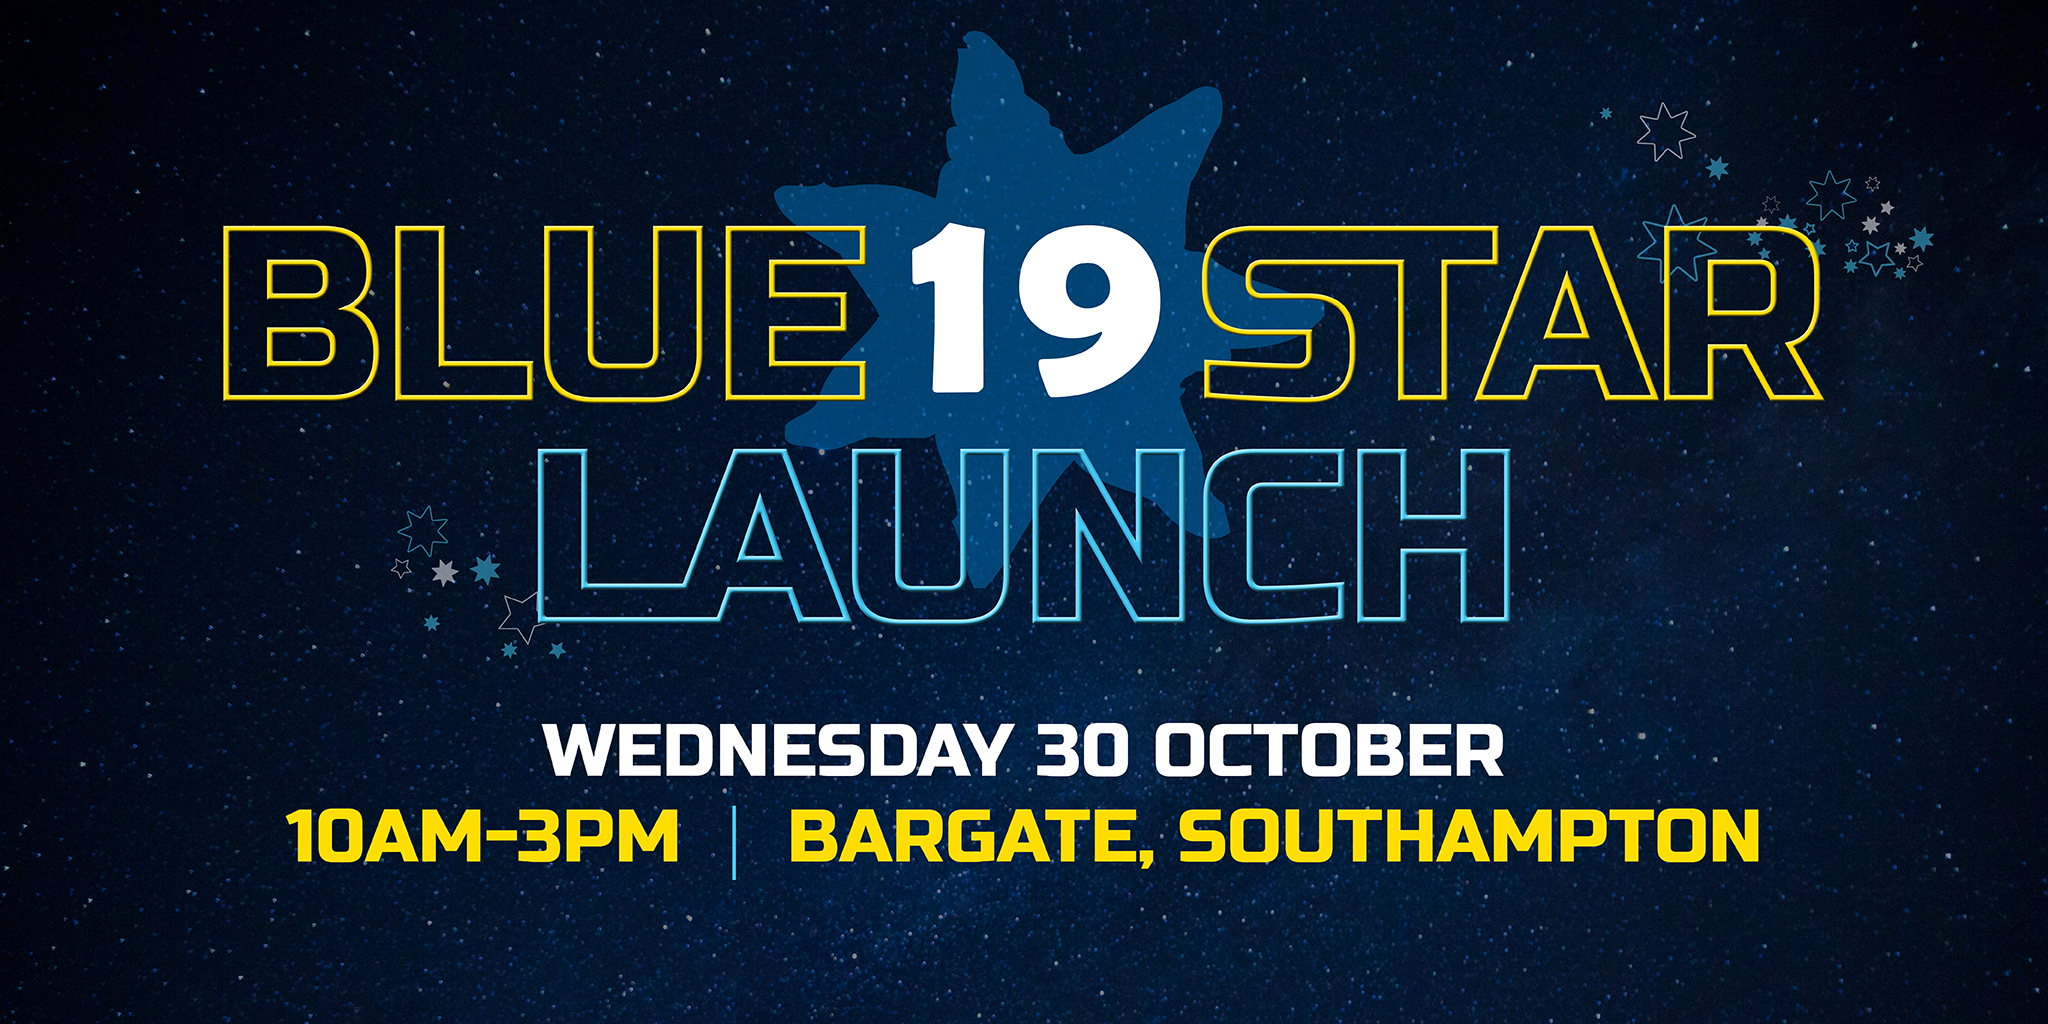 Bluestar 19 launch - Wednesday 30th October,10am-3pm, Bargate Southampton